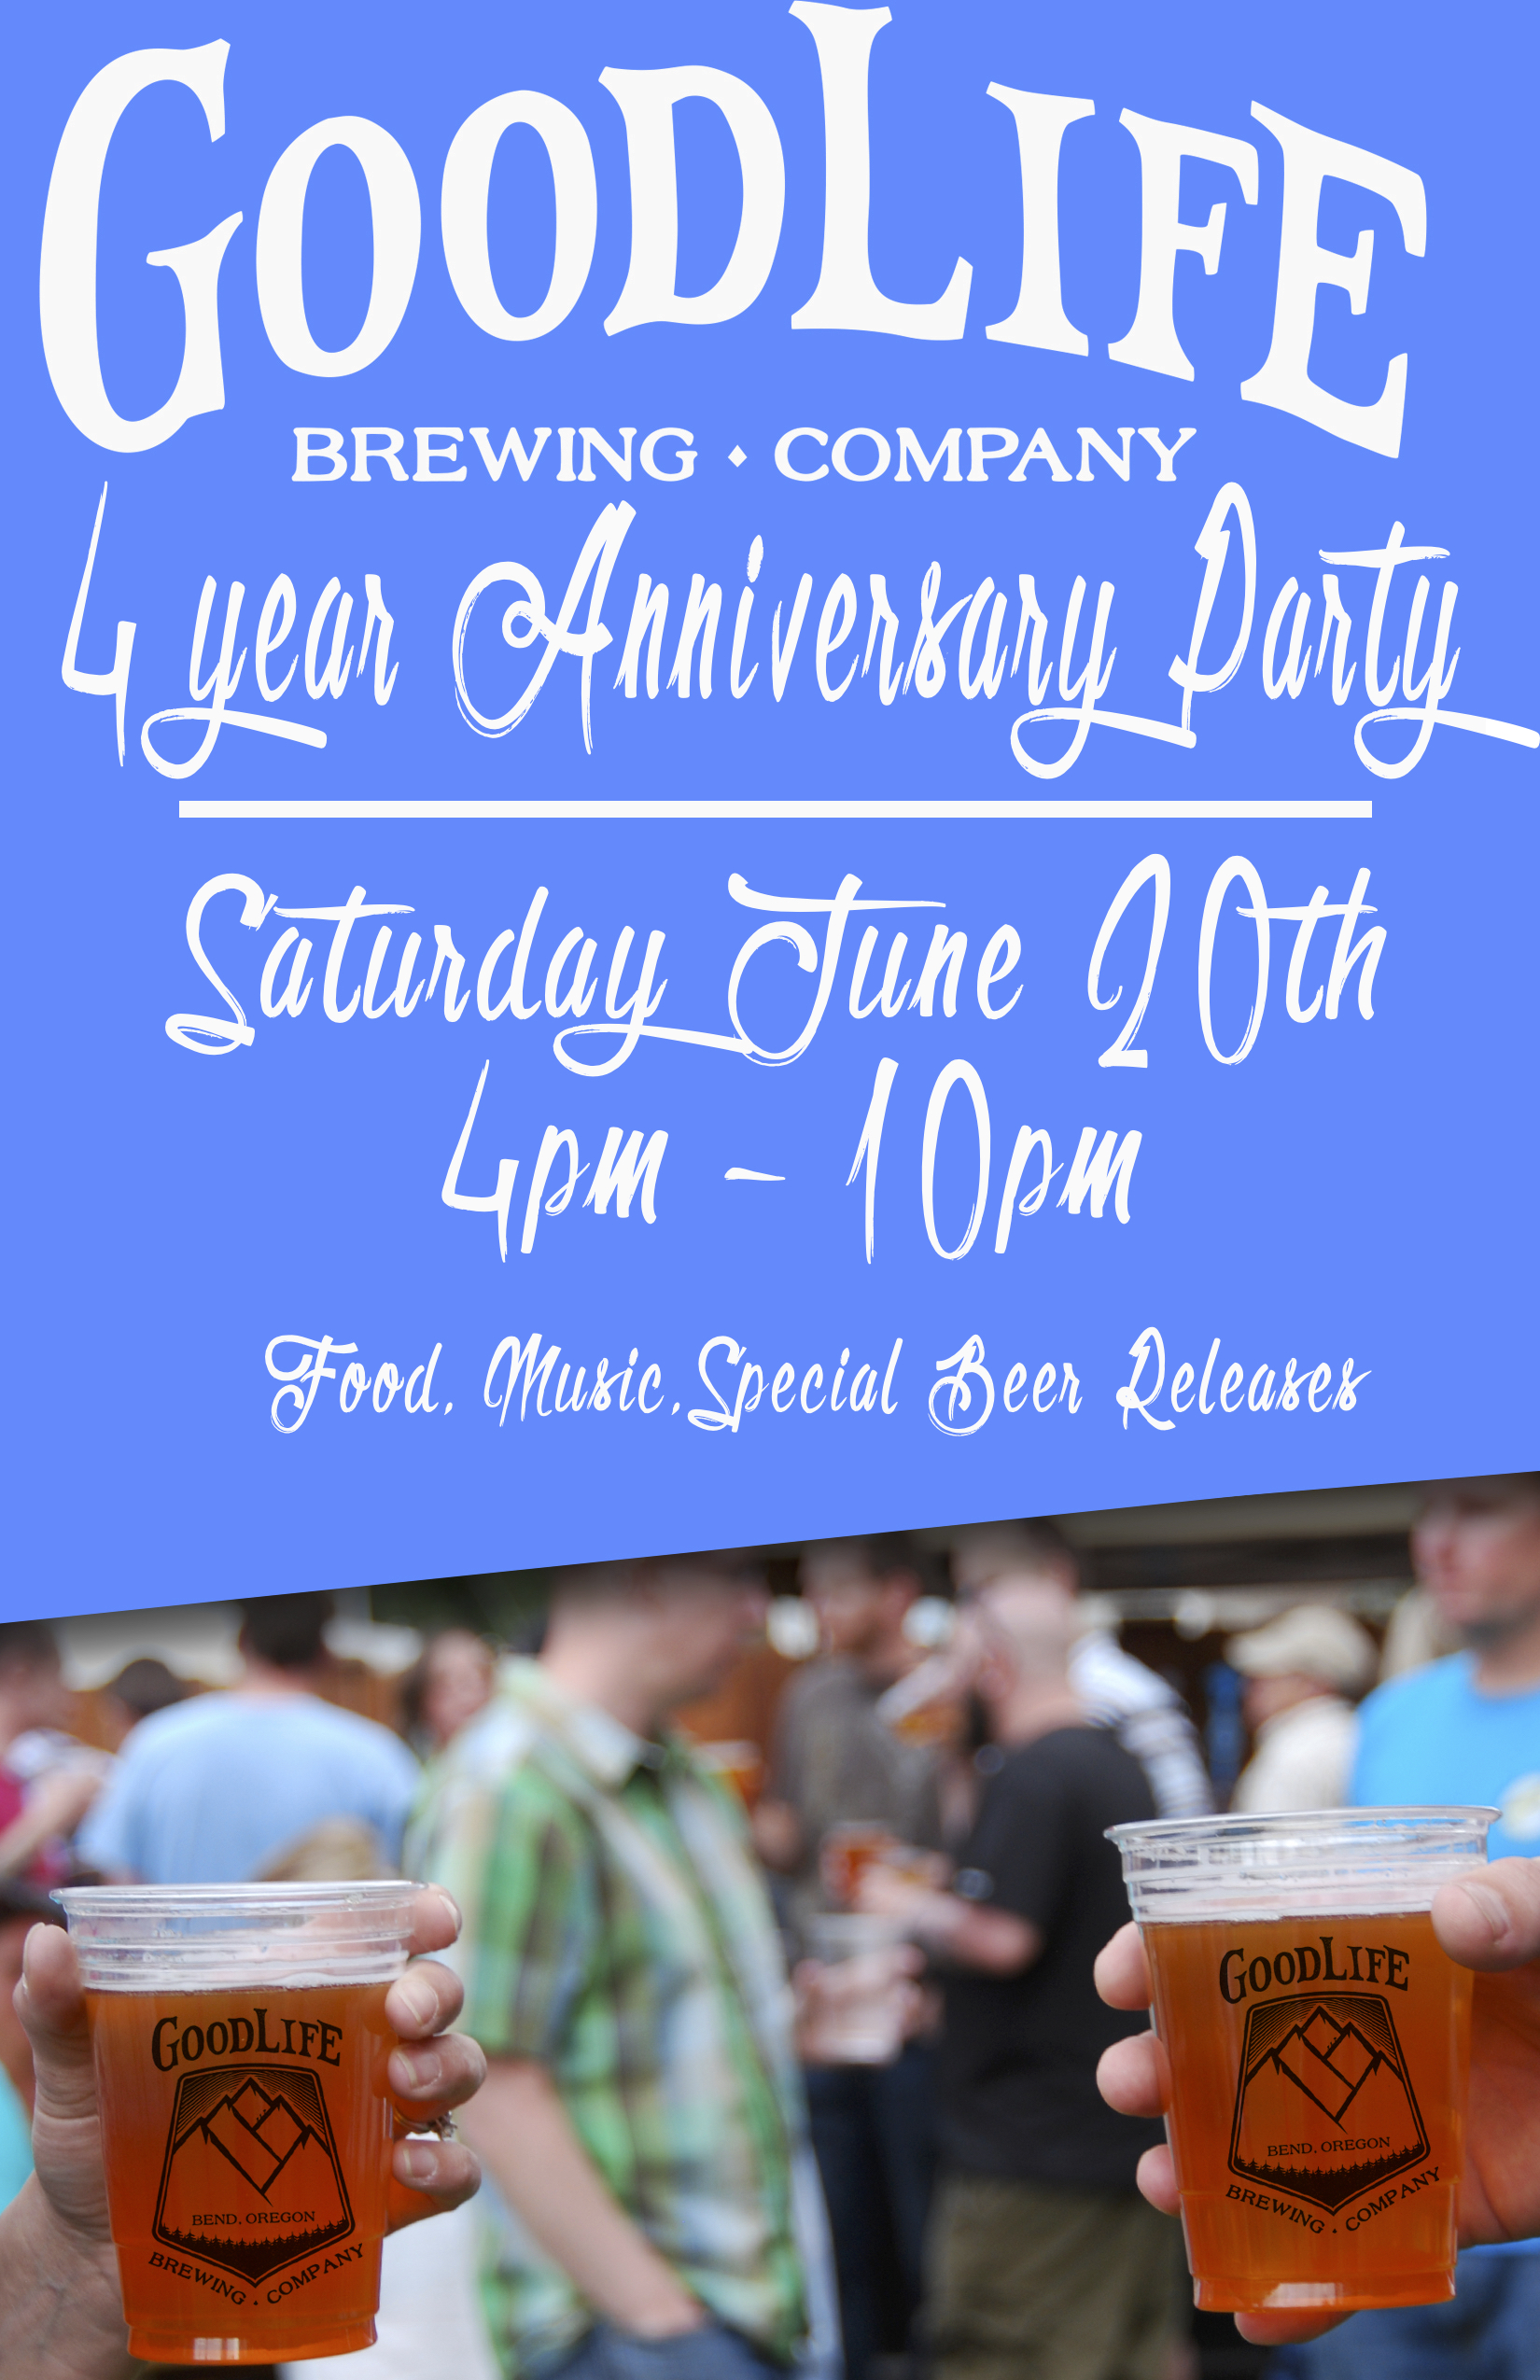 GoodLife Brewing 4 Year Anniversay Party